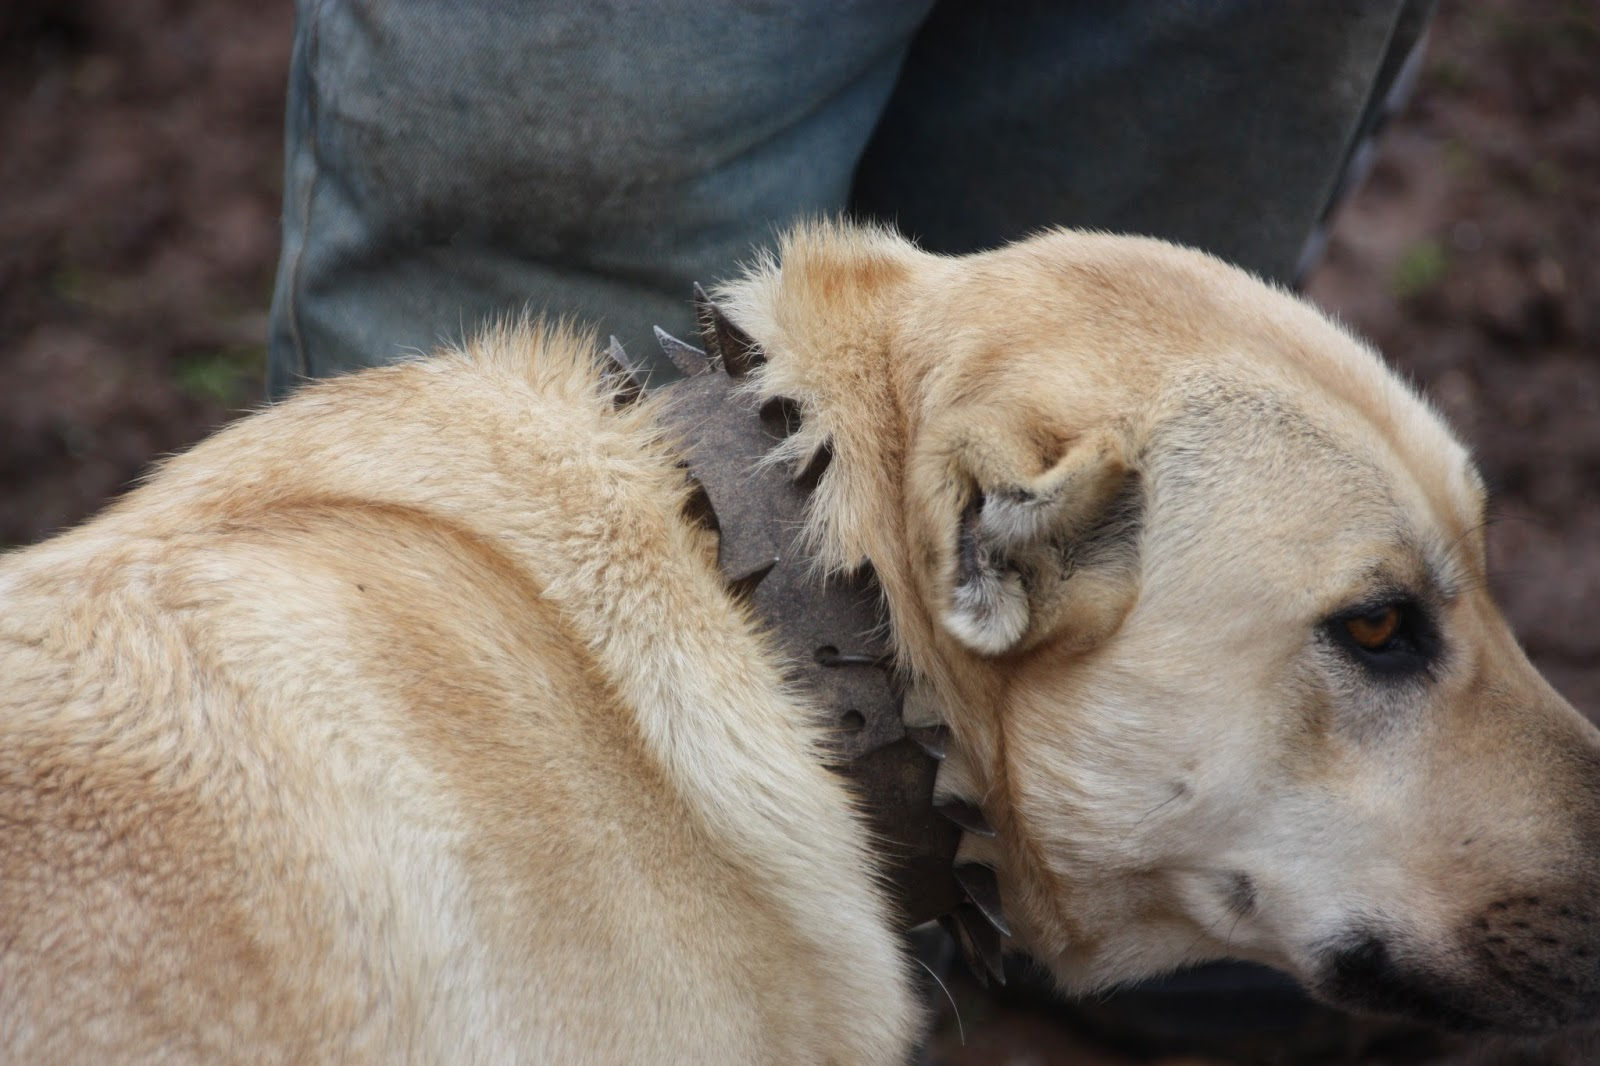 How to protect a dog (a bitch) during estrus from males